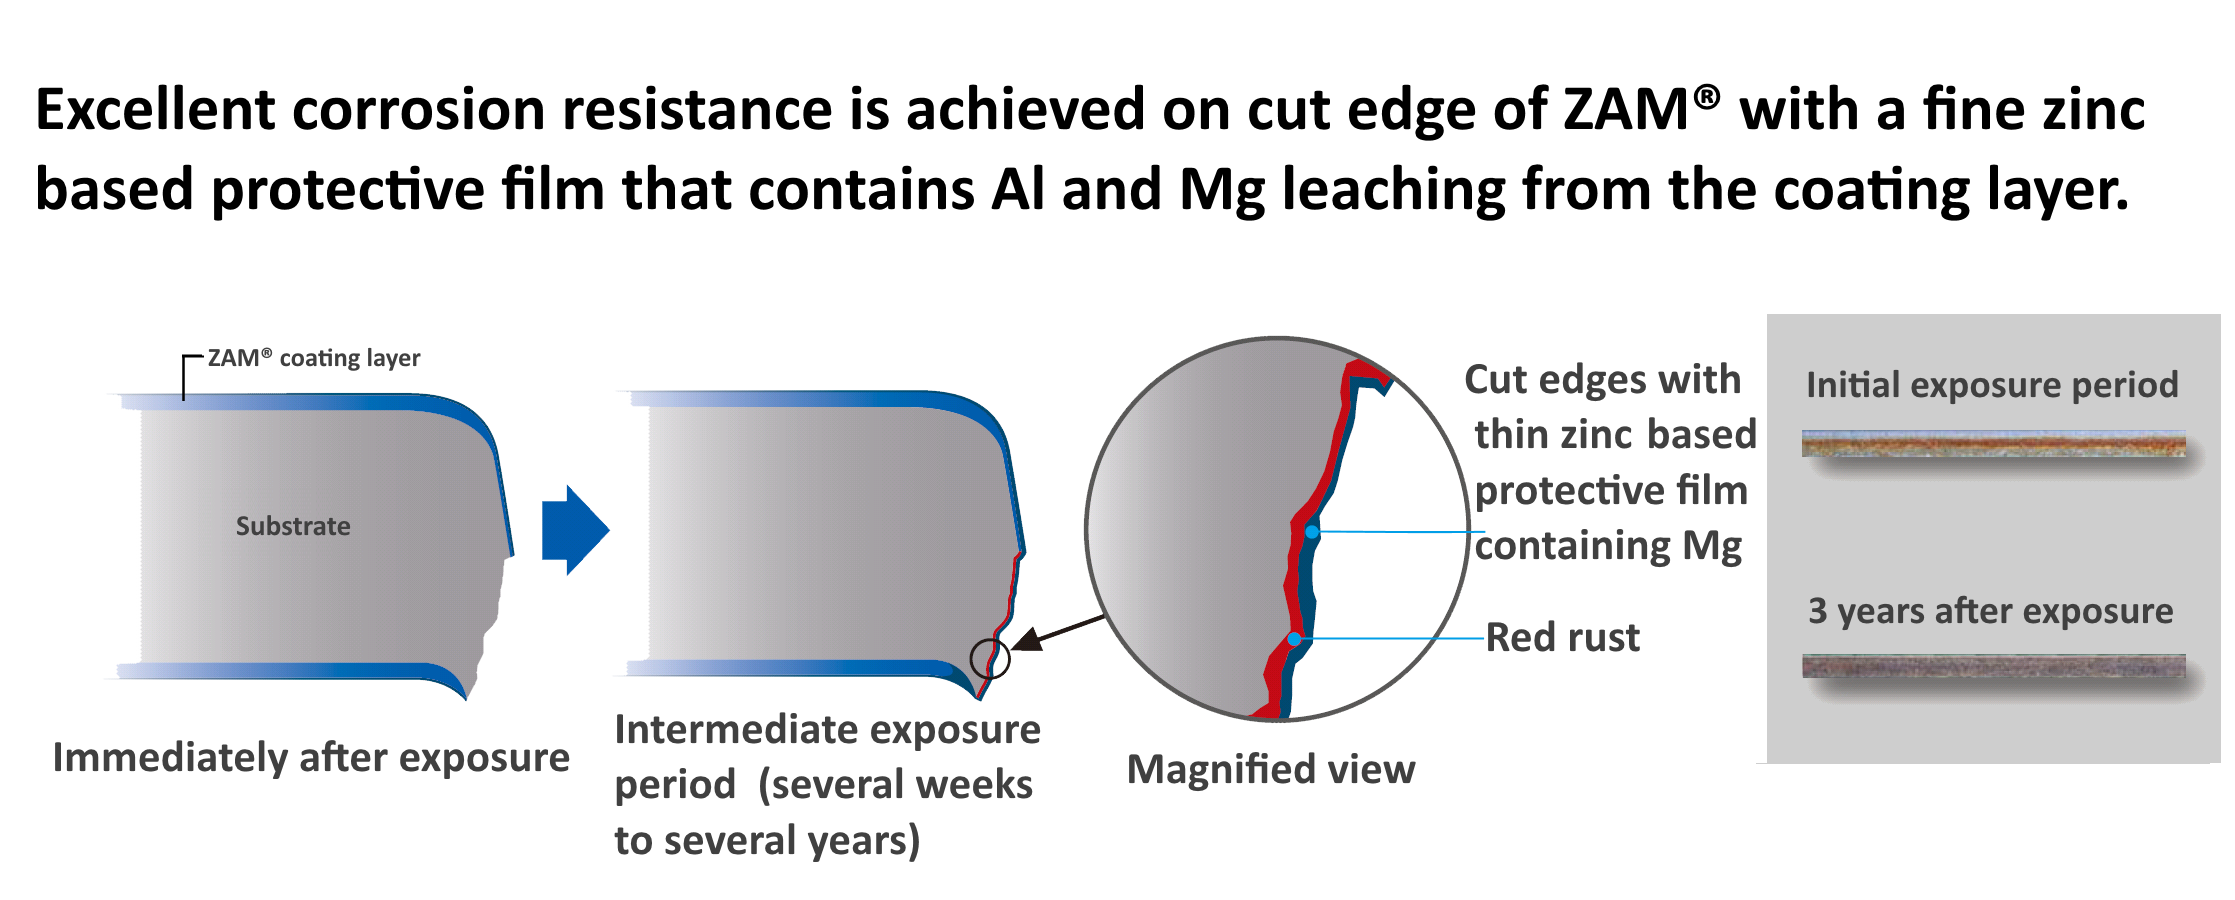 Illustration of excellent corrosion resistance achieved on cut edge of ZAM®